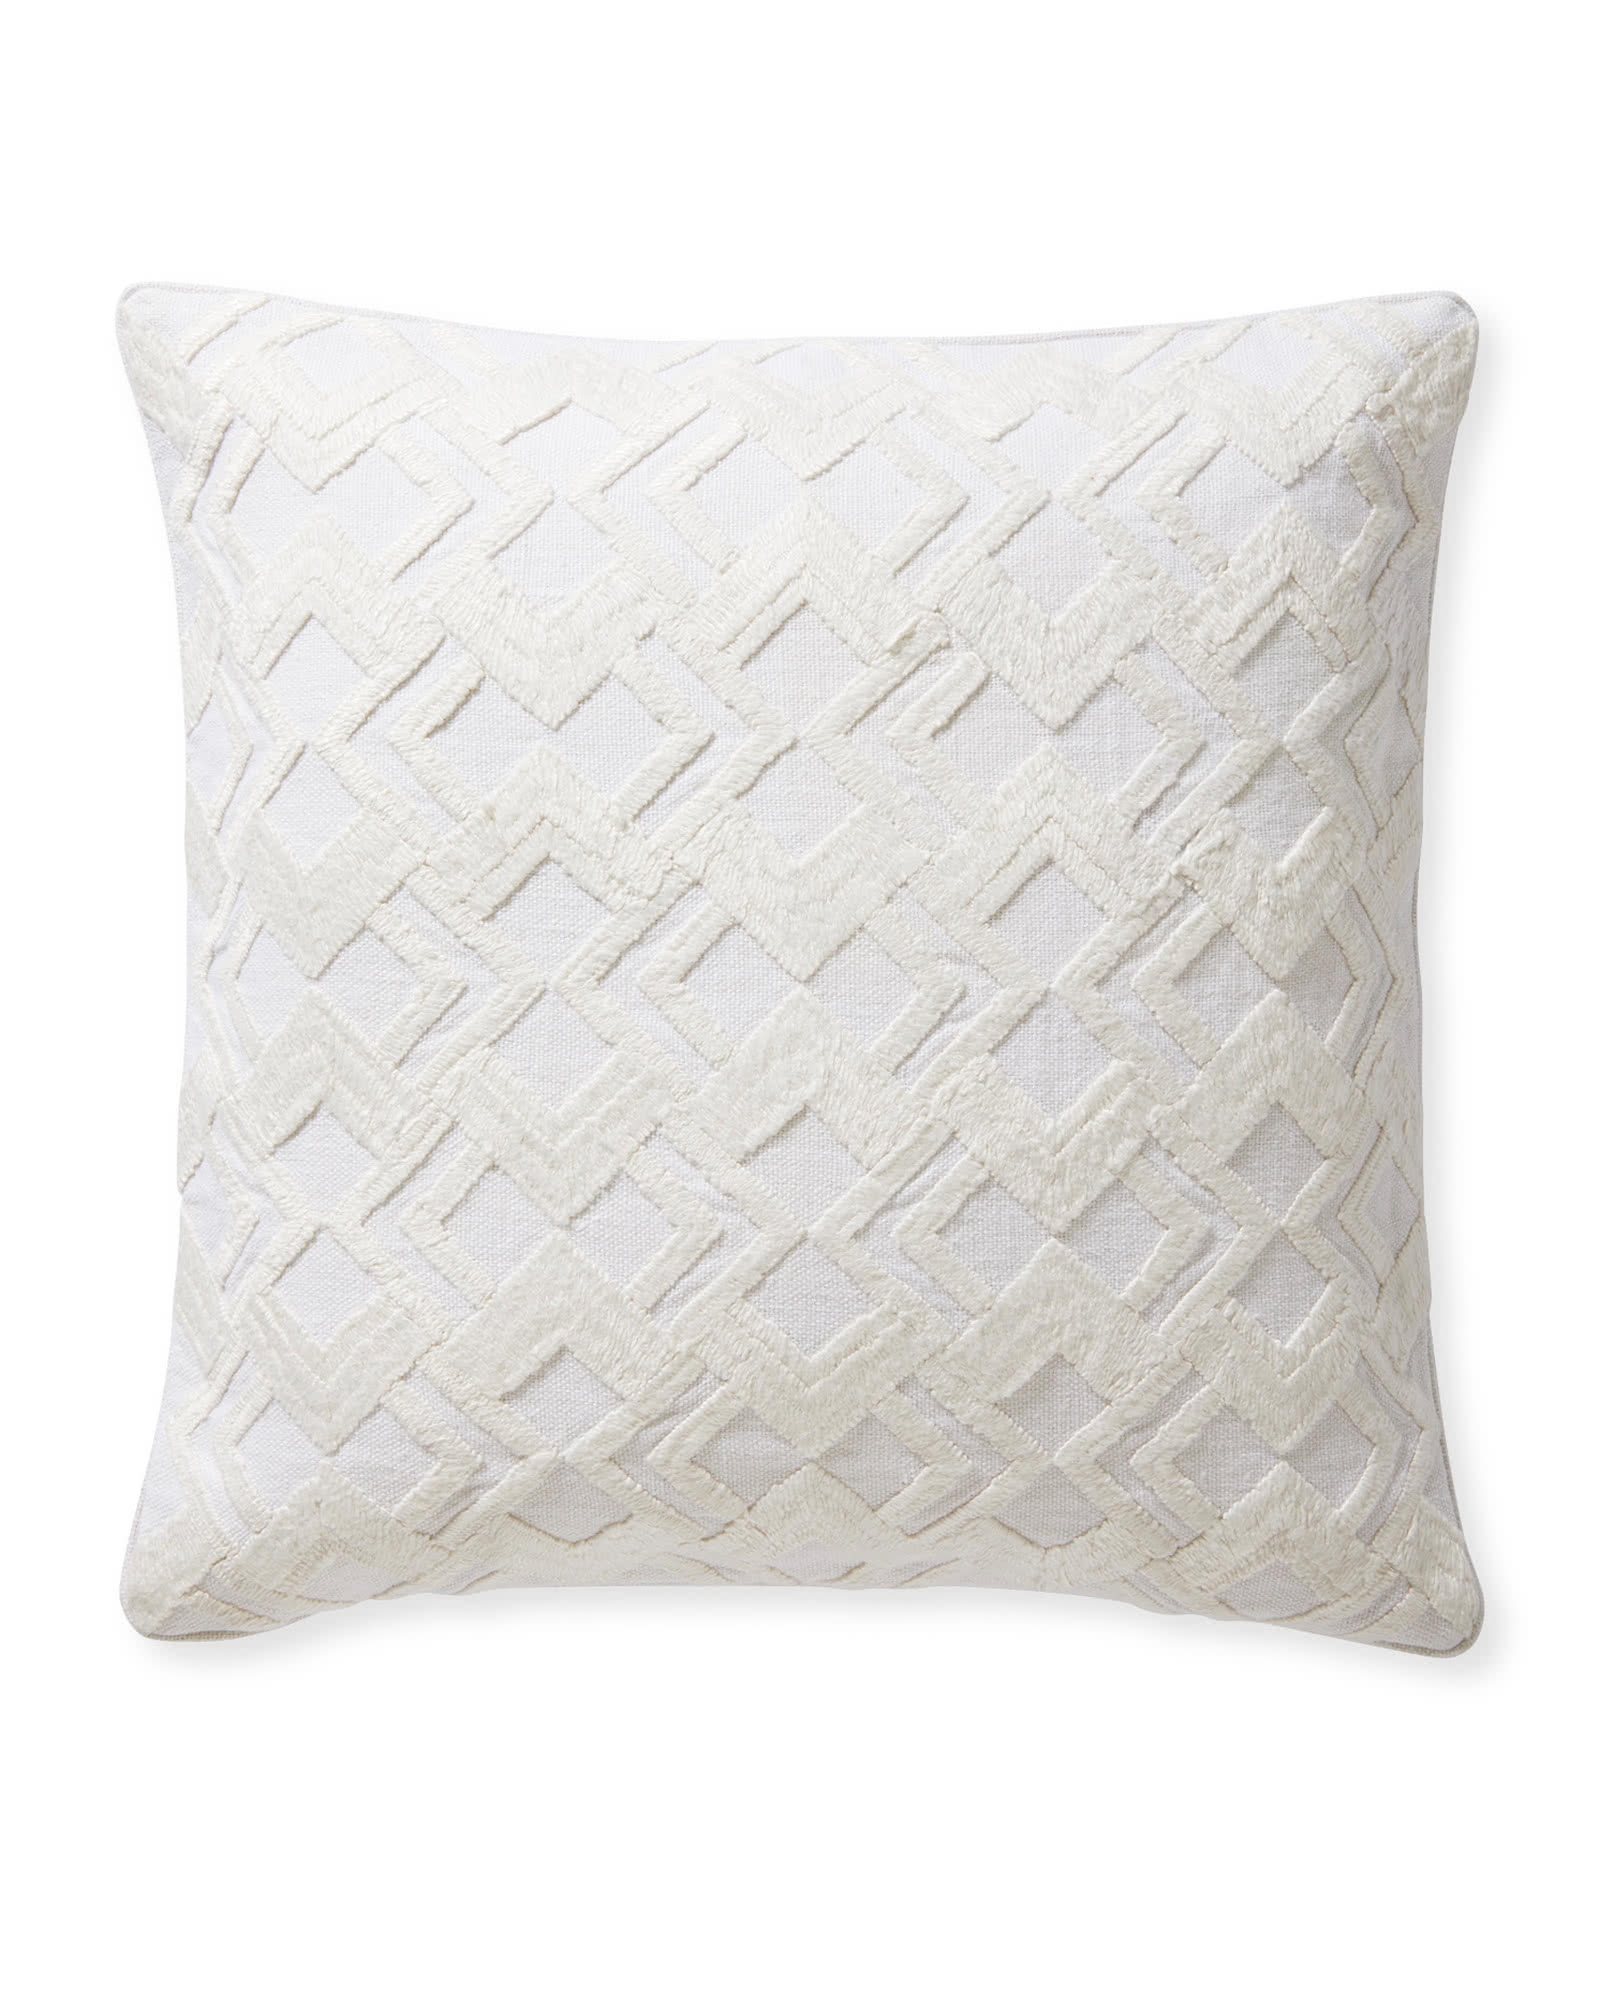 Paige Pillow Cover, Ivory